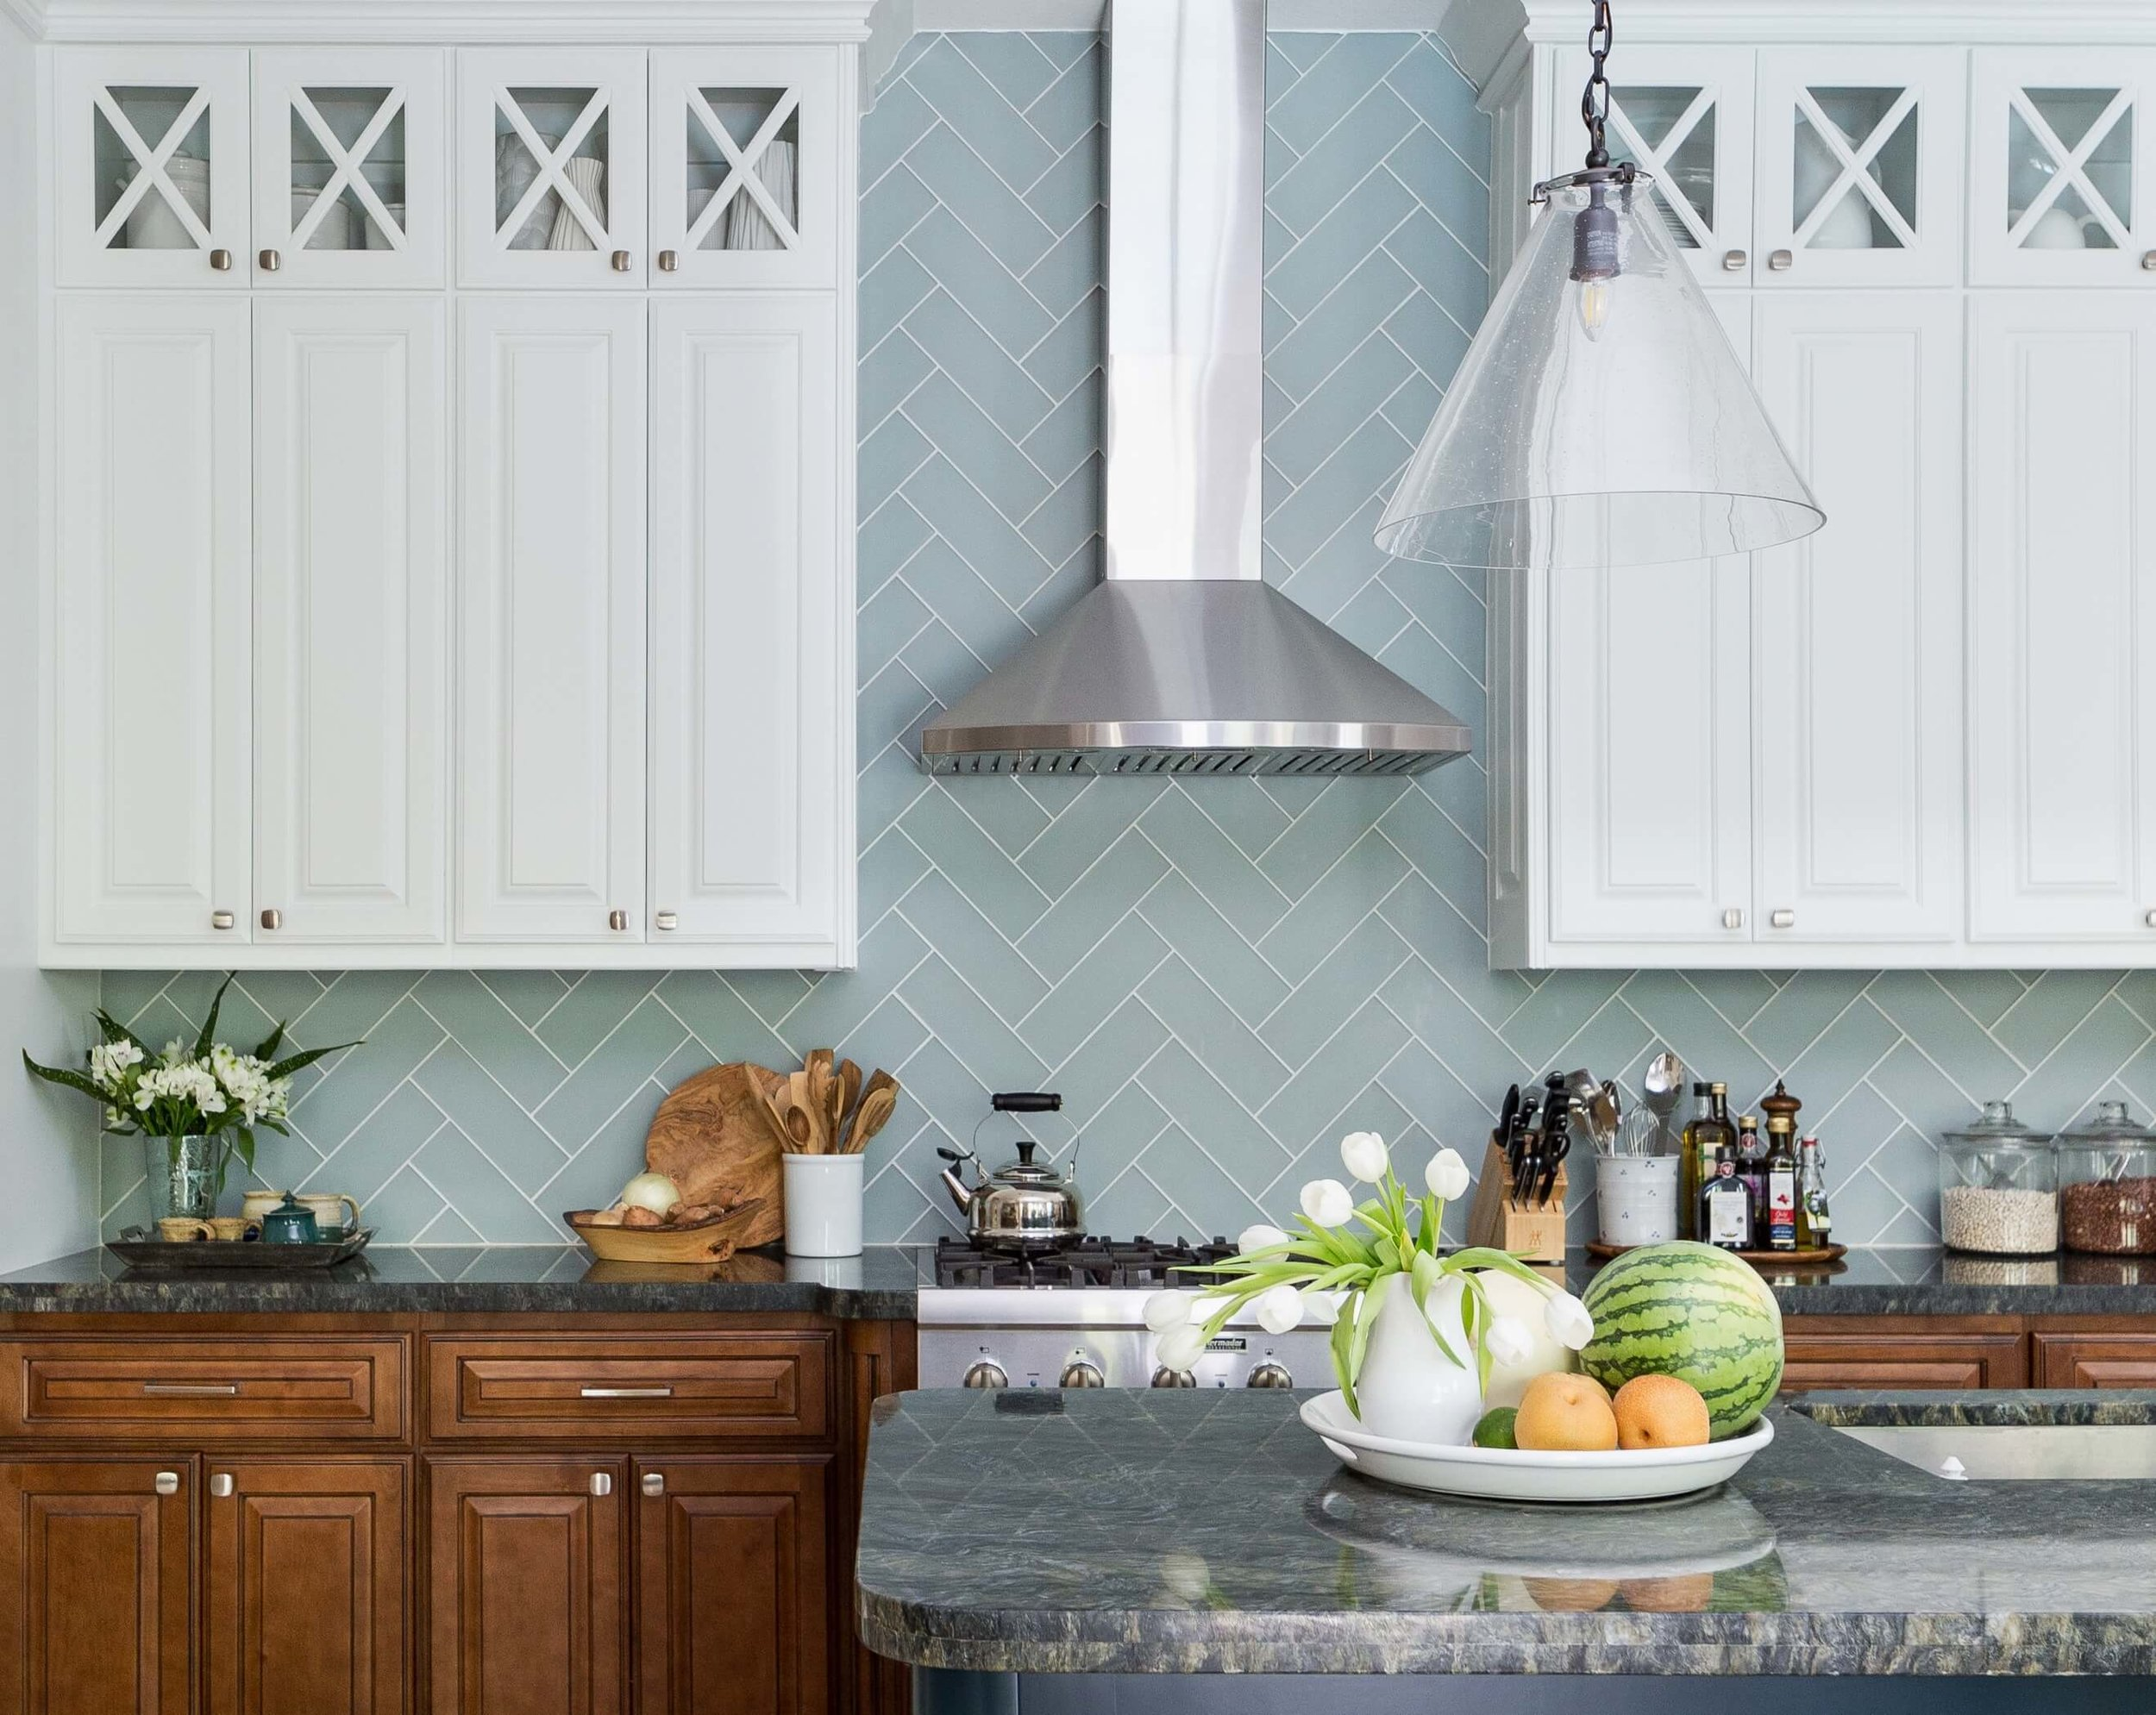 Coastal style kitchen makeover - Carla Aston, Designer | Colleen Scott, Photographer | Shaun Bain, Contractor | #turquoisekitchen #coastalkitchen